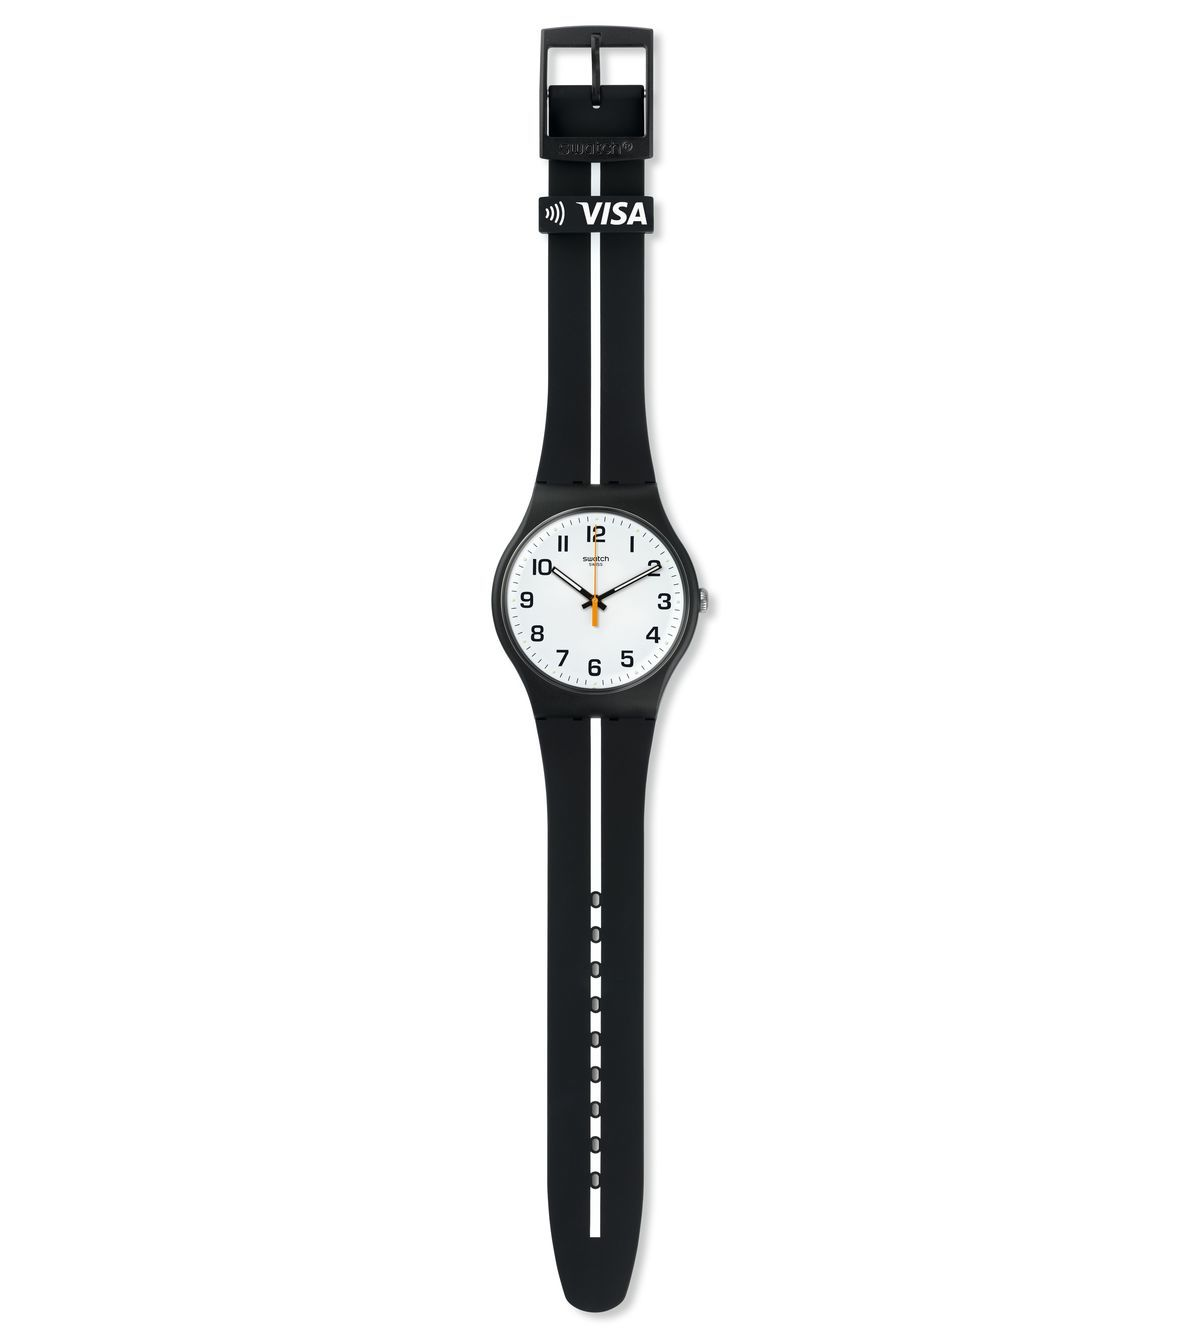 SWATCH BELLAMY WHITE LINE - SVIB101-5000